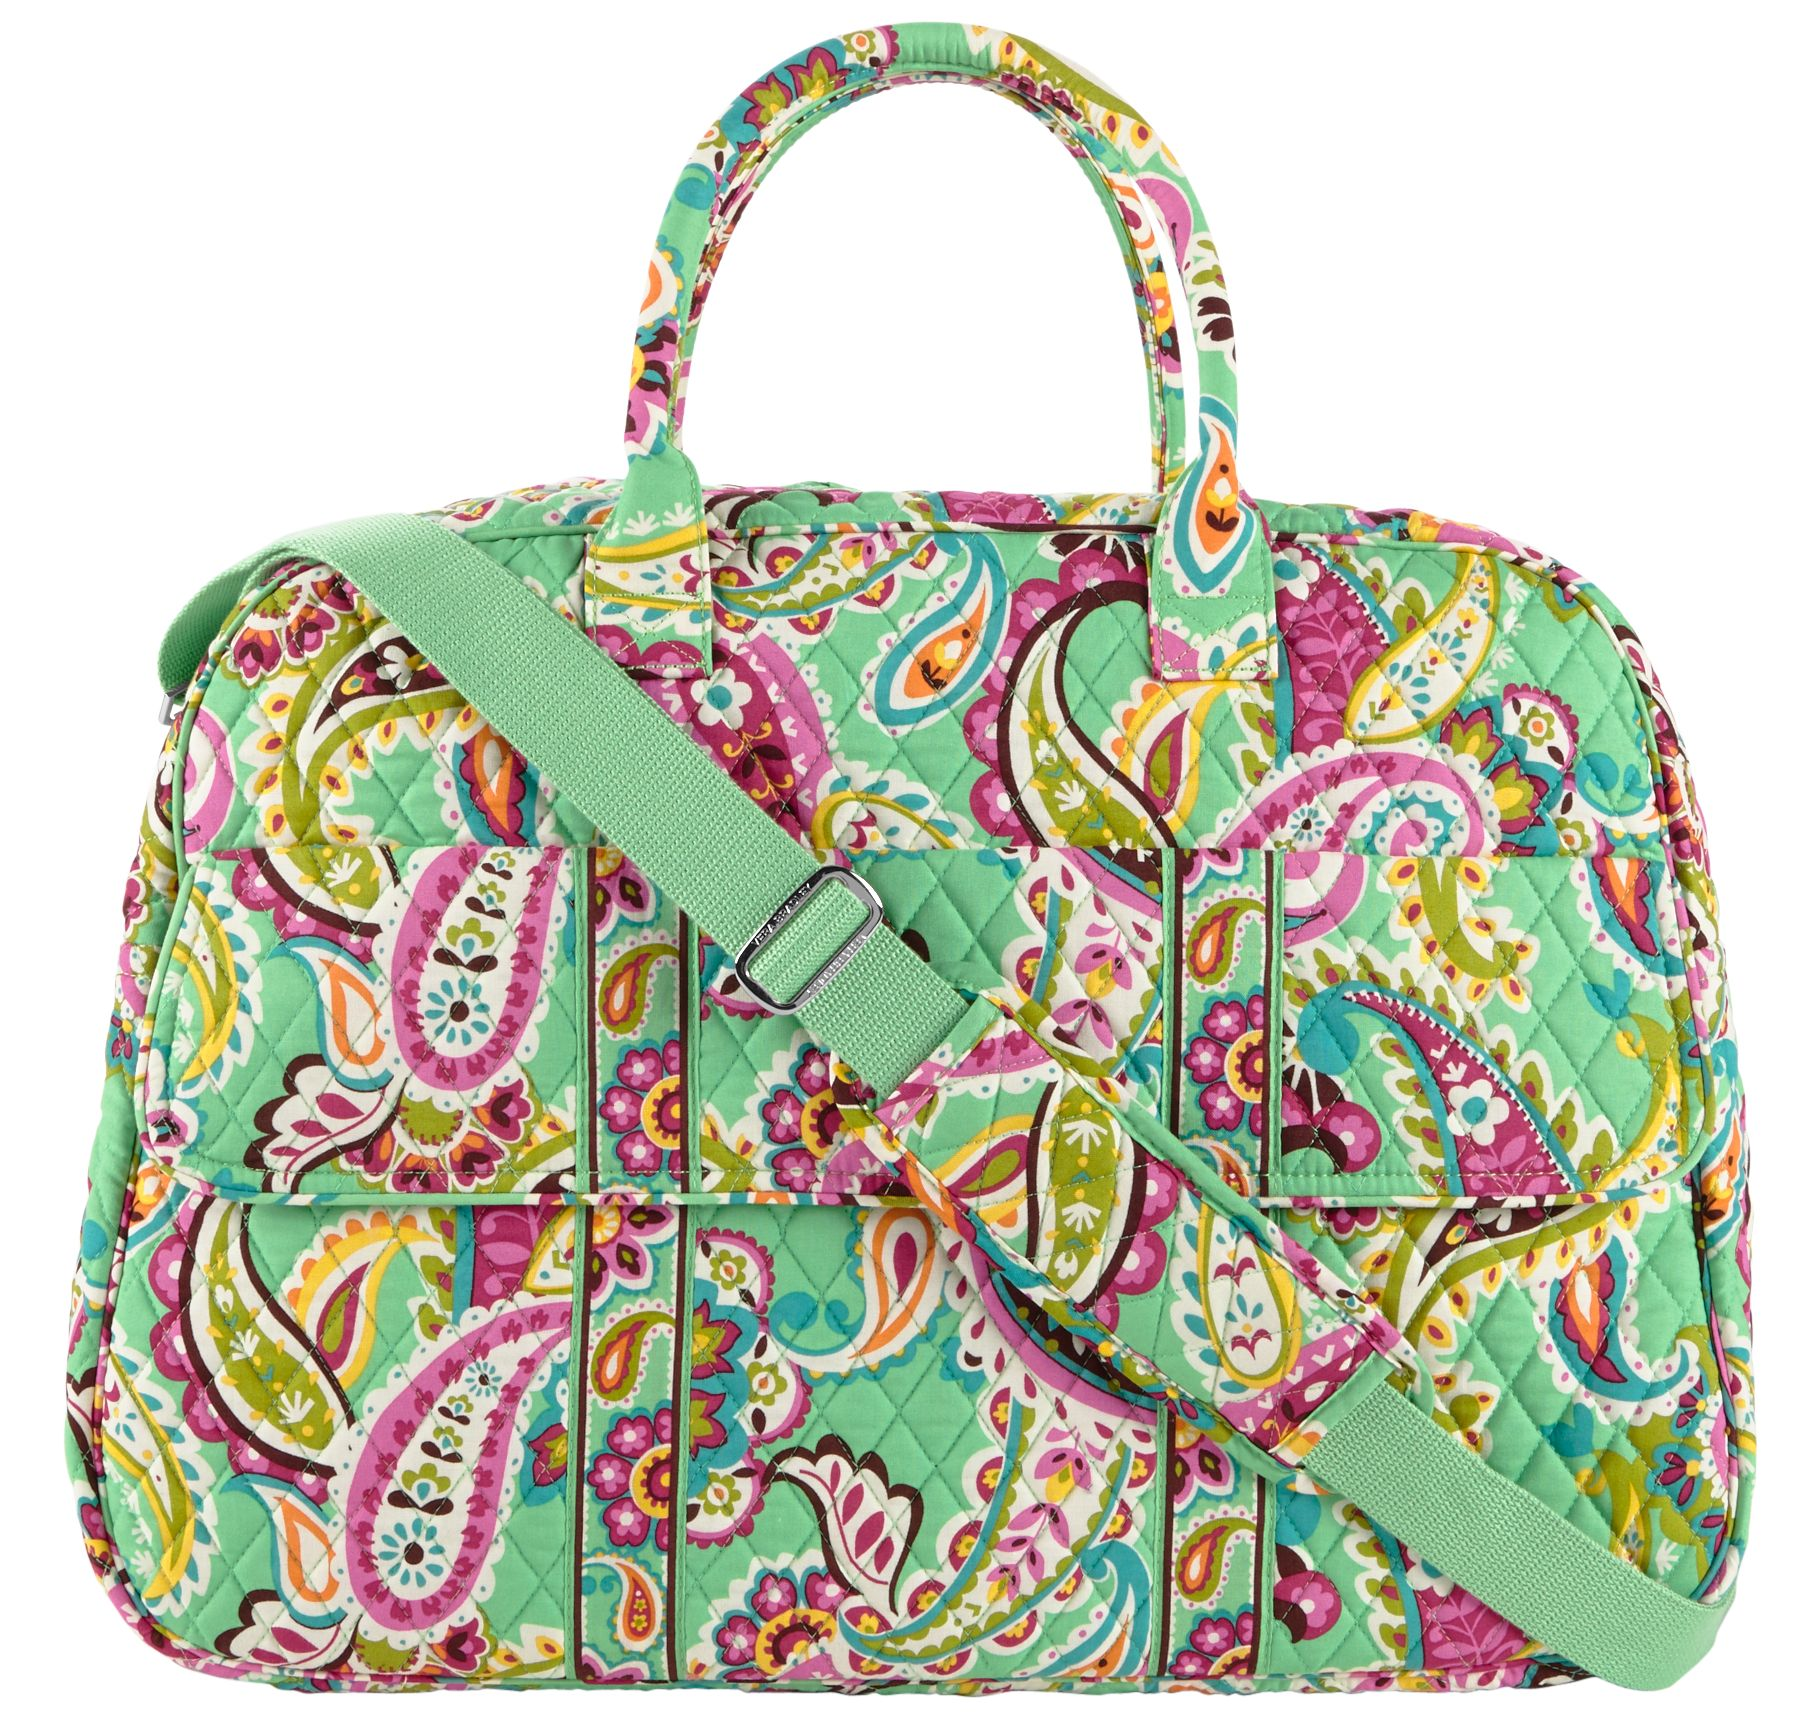 Vera Bradley Grand Traveler Bag in Tutti Frutti